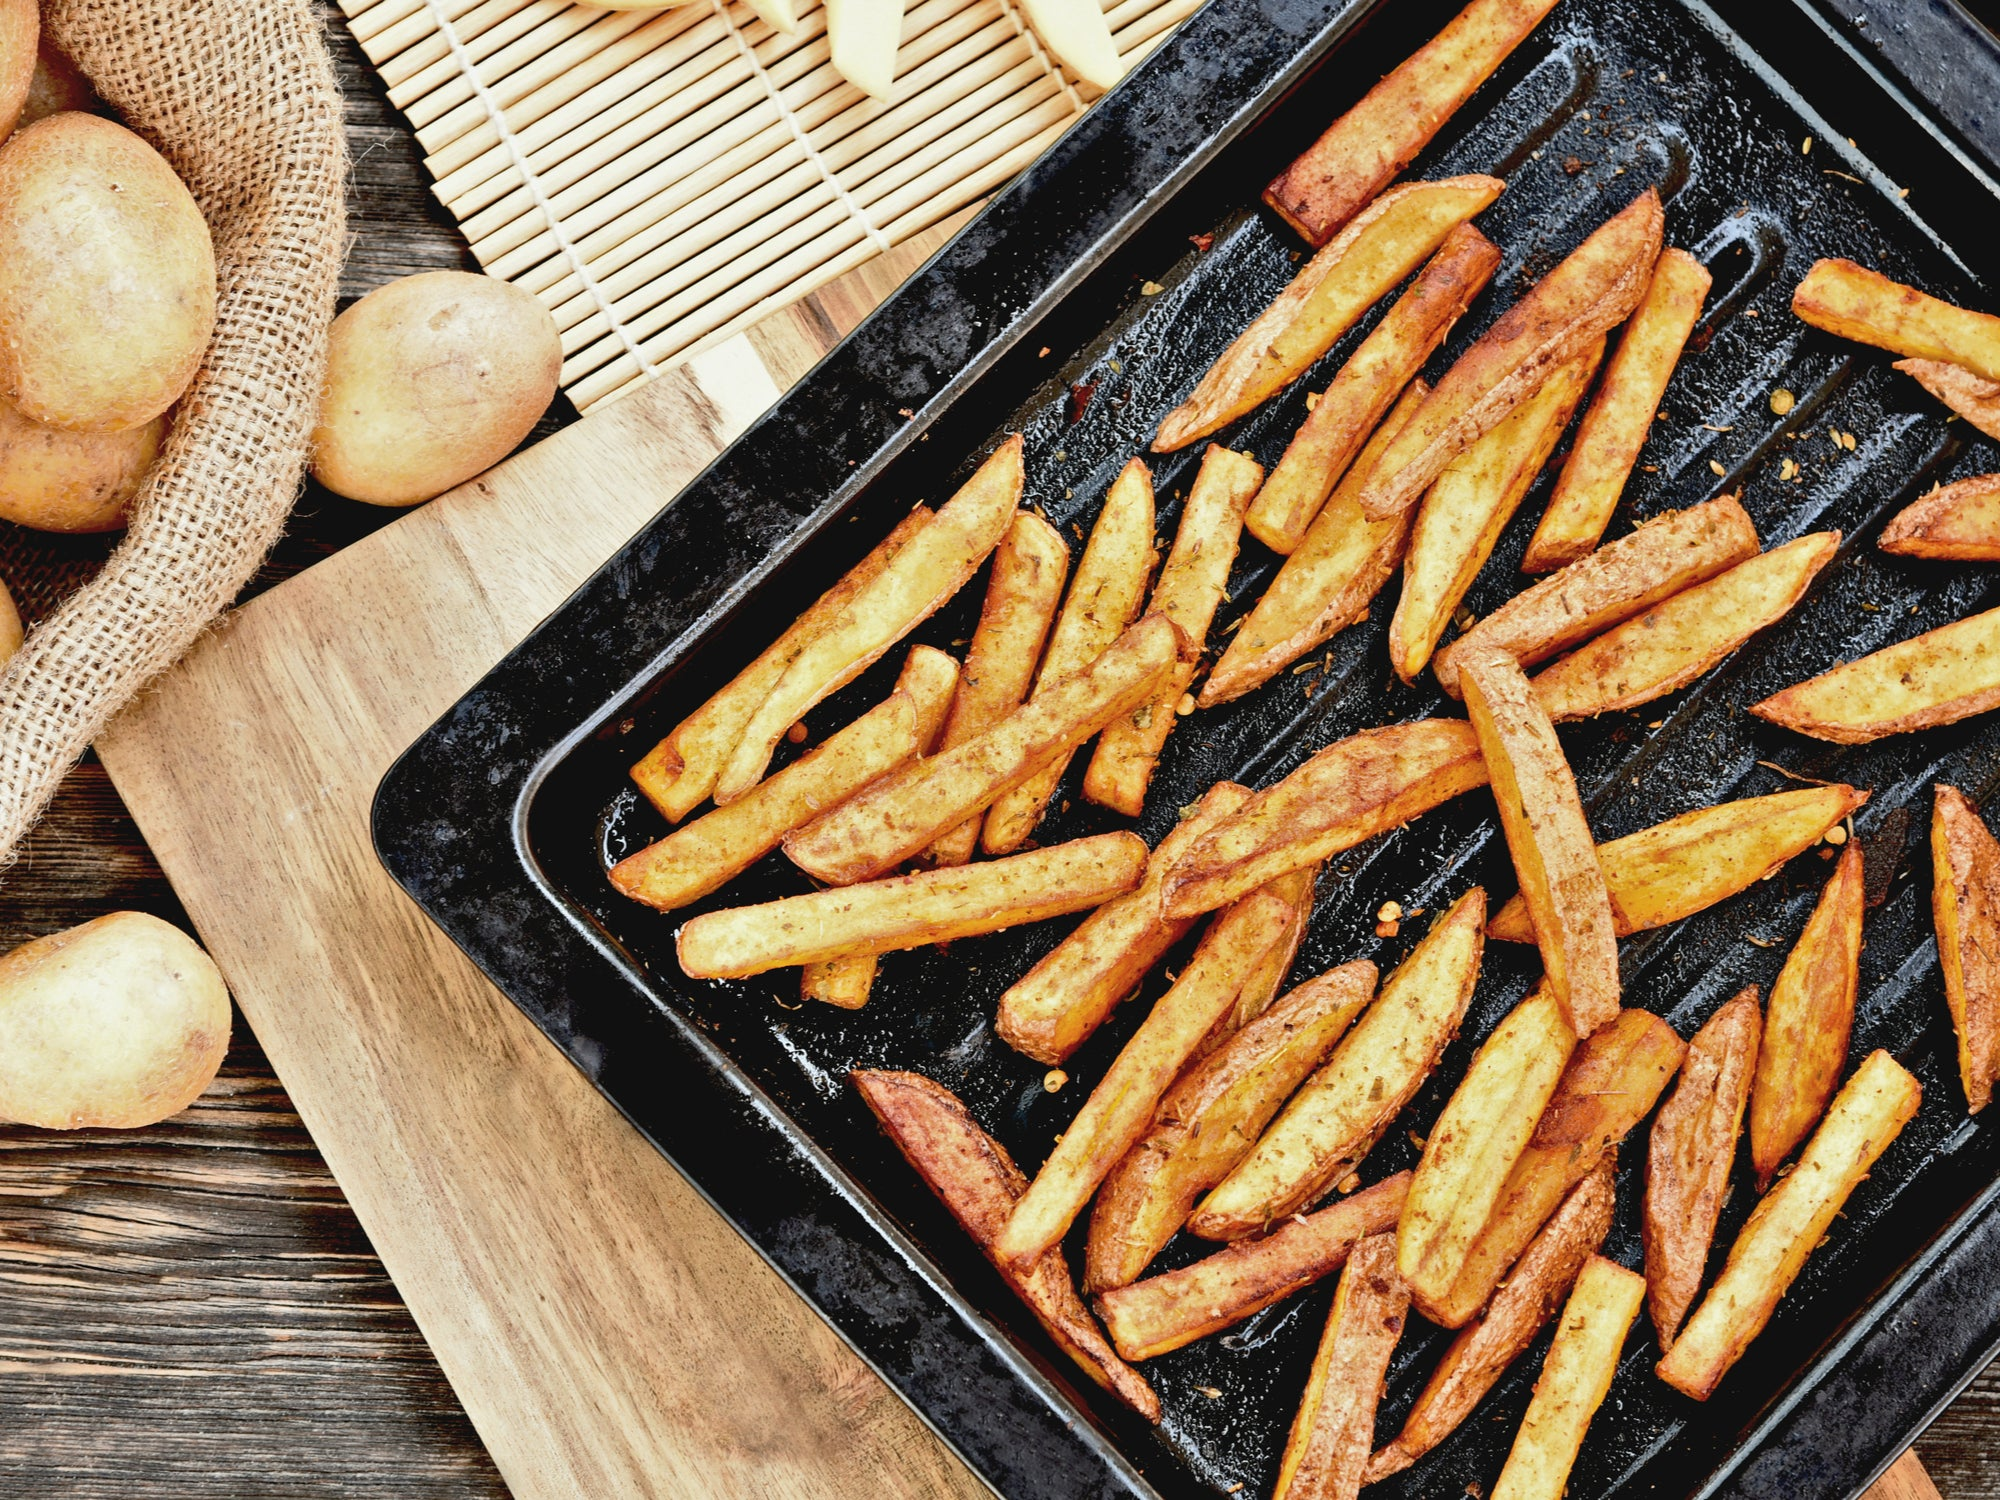 French Fries Made in the Kalorik MAXX Air Fryer Oven